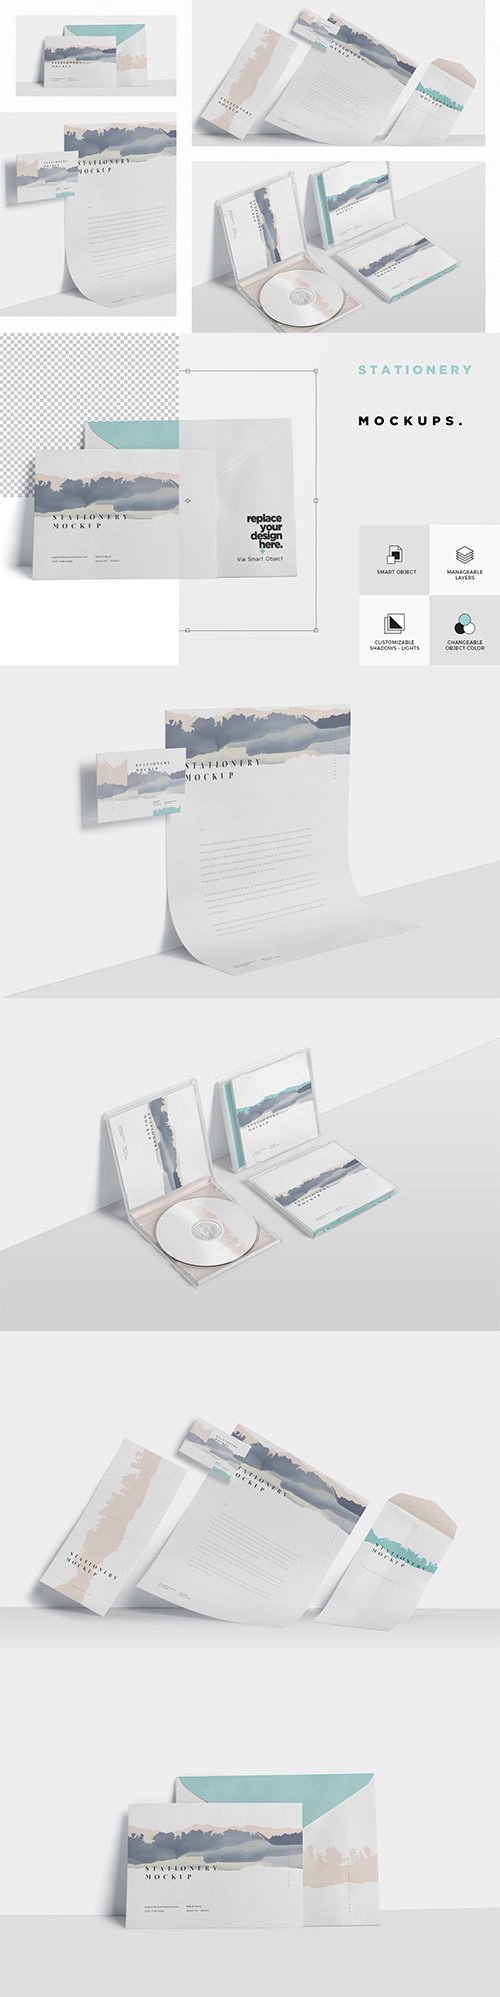 Stationery Mock Ups PSD